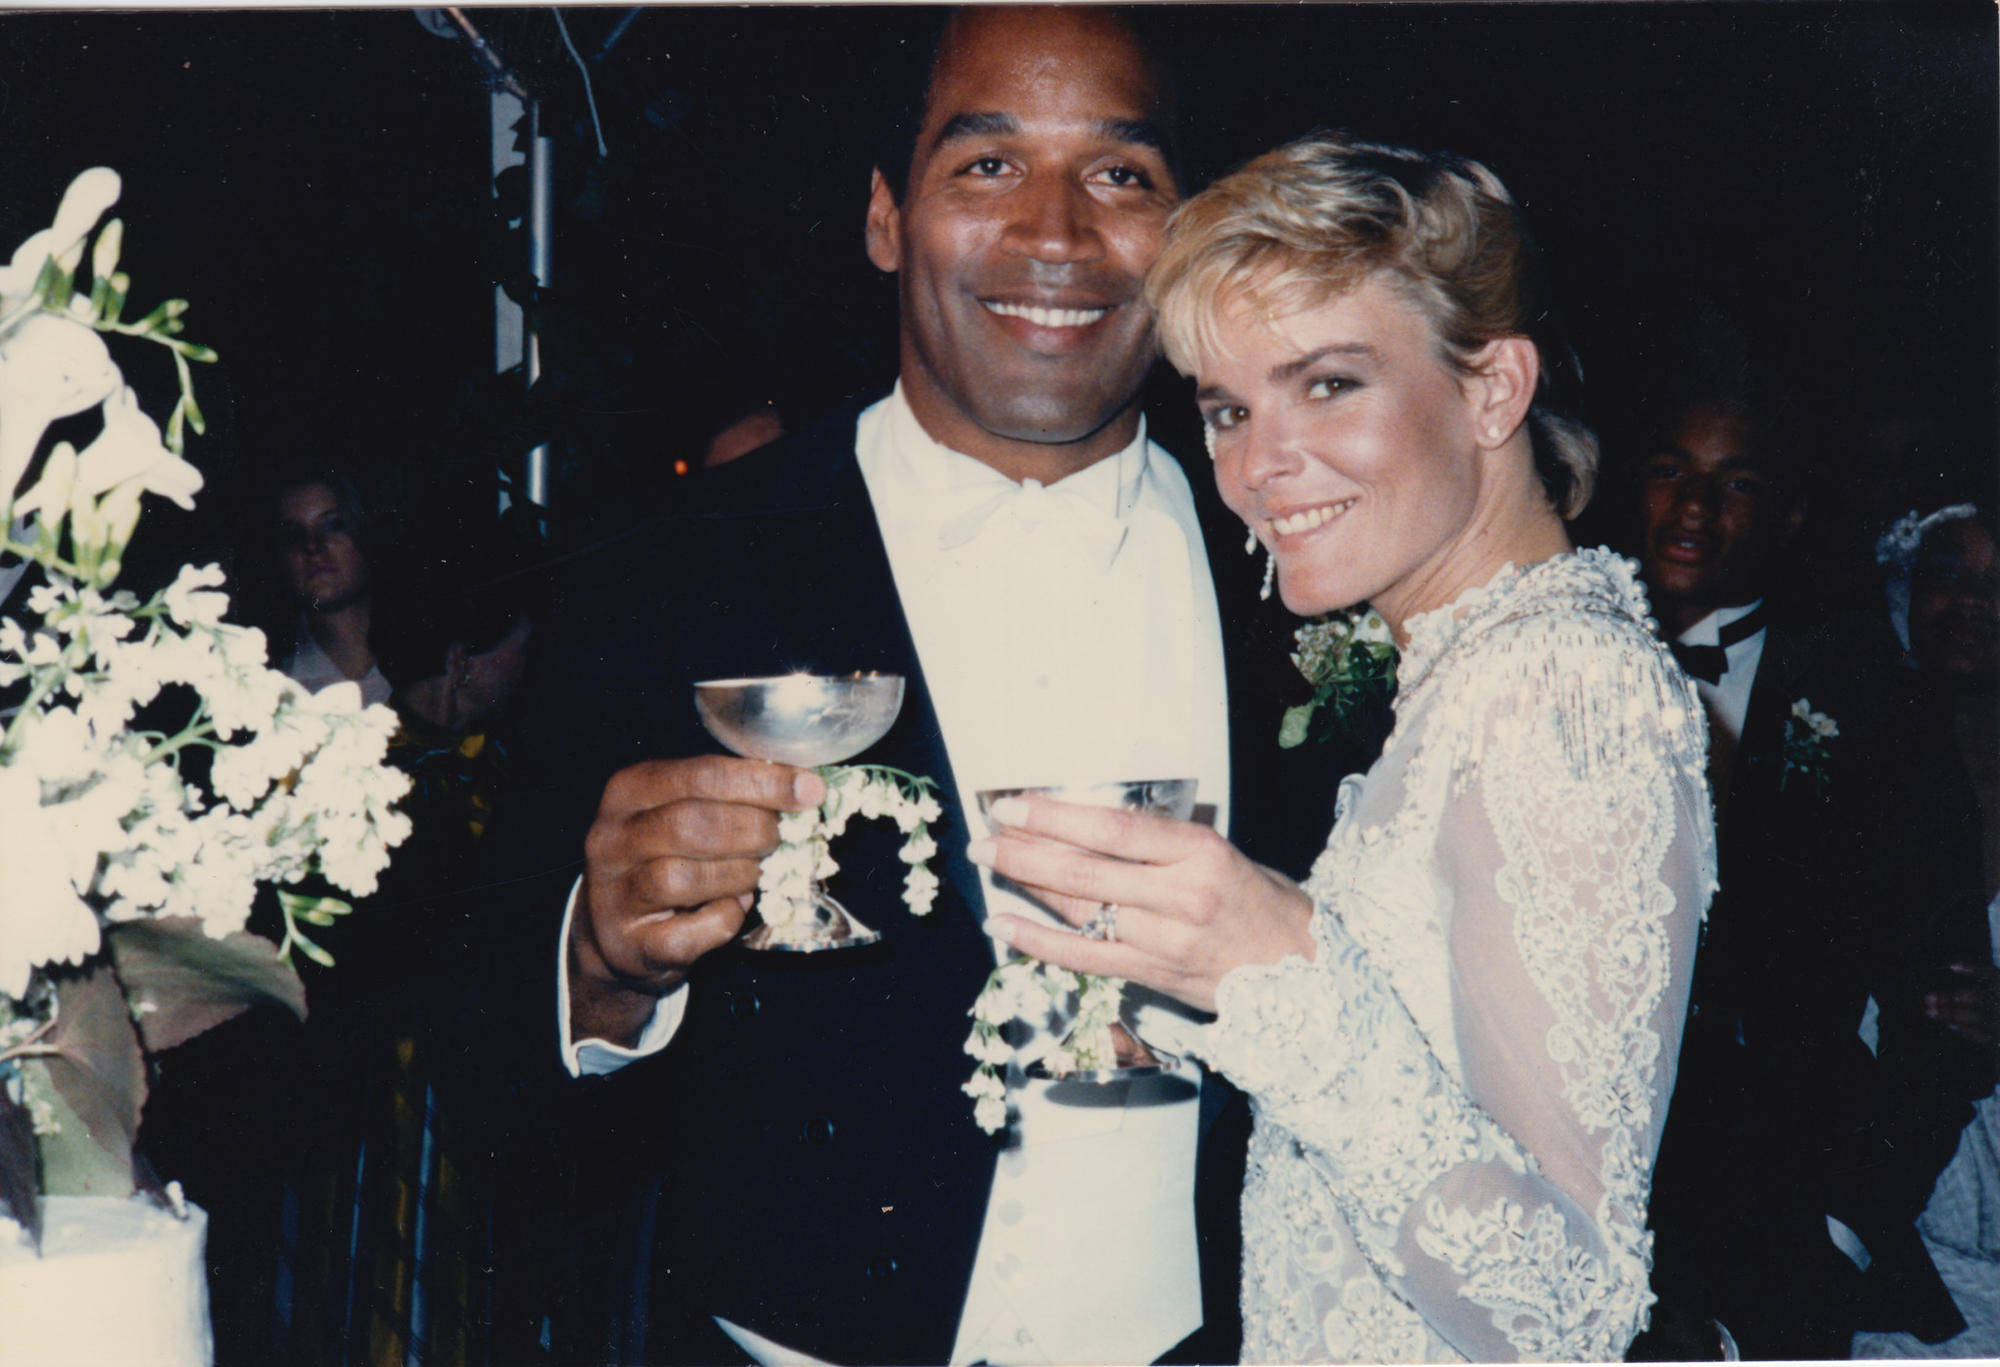 The wedding of O.J. Simpson and Nicole Brown Simpson.